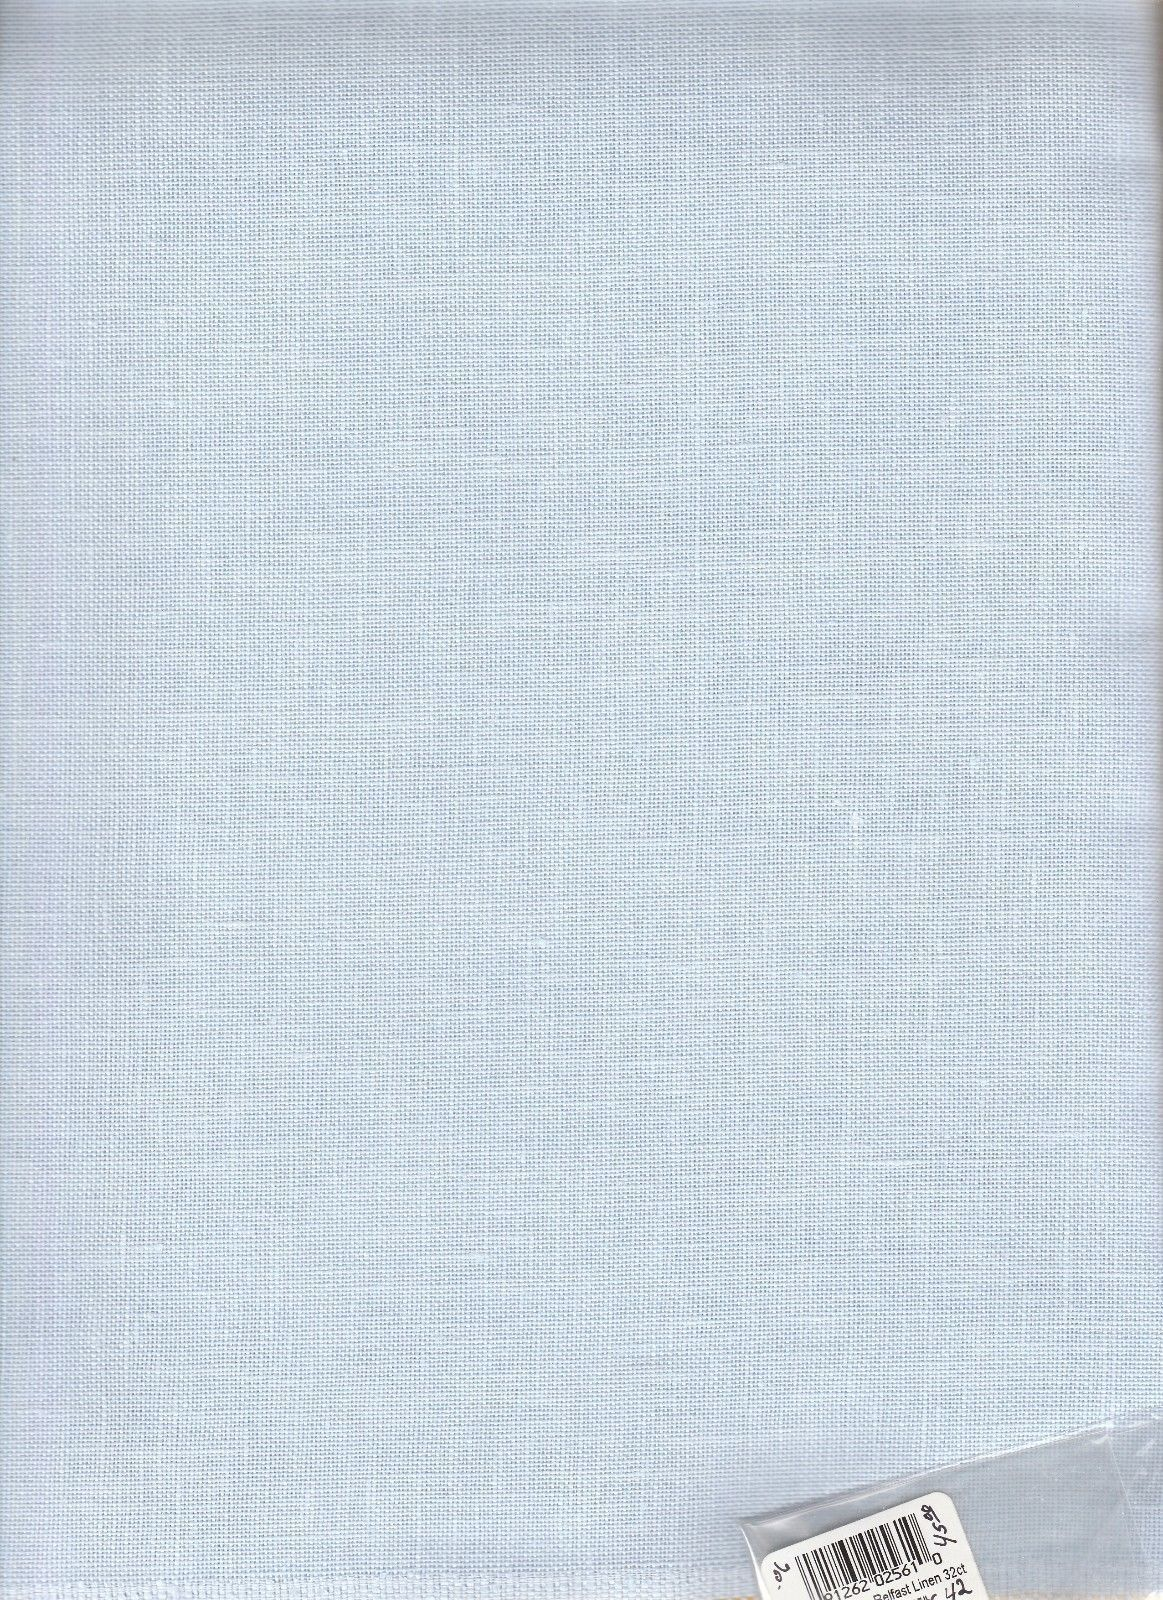 Embroidery Cloth Fabric 183196 Belfast Linen 32ct 36 X 42 Blue